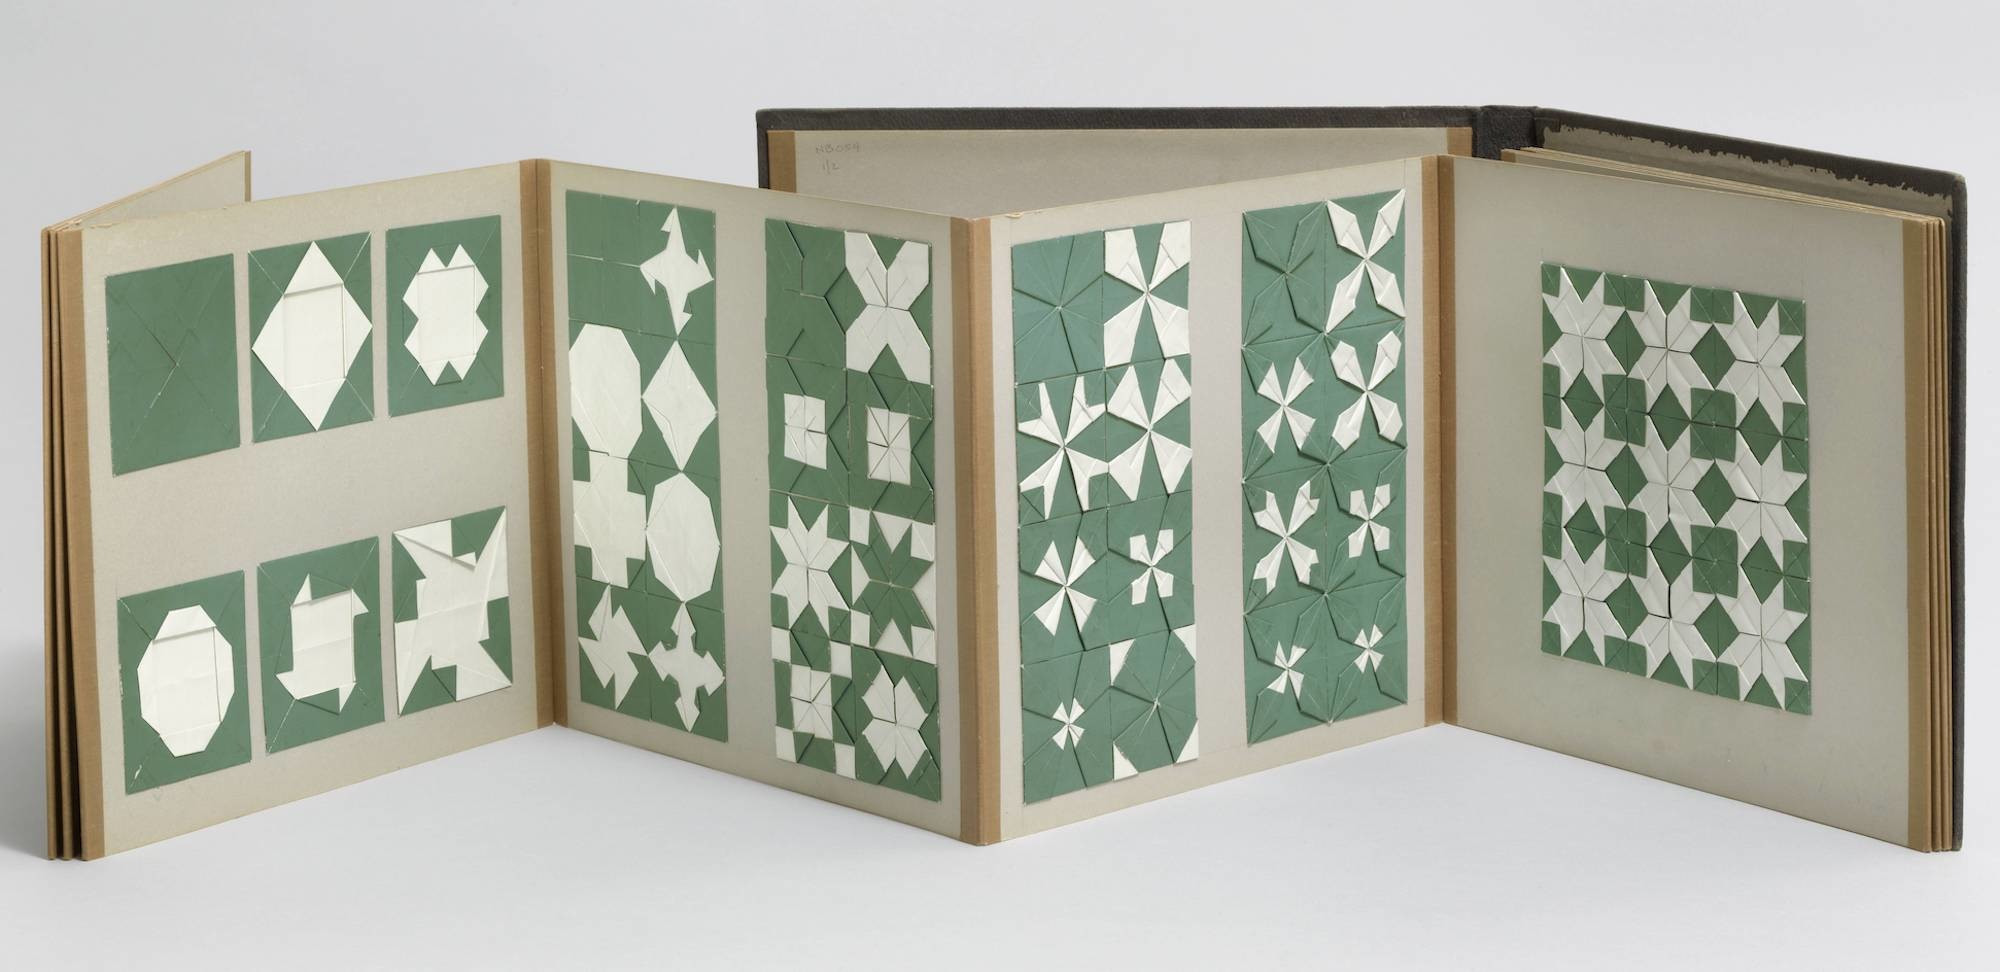 Fannie E. Katchline. Paper folding (Kindergarten material based on the educational theories of Friedrich Froebel). c. 1890